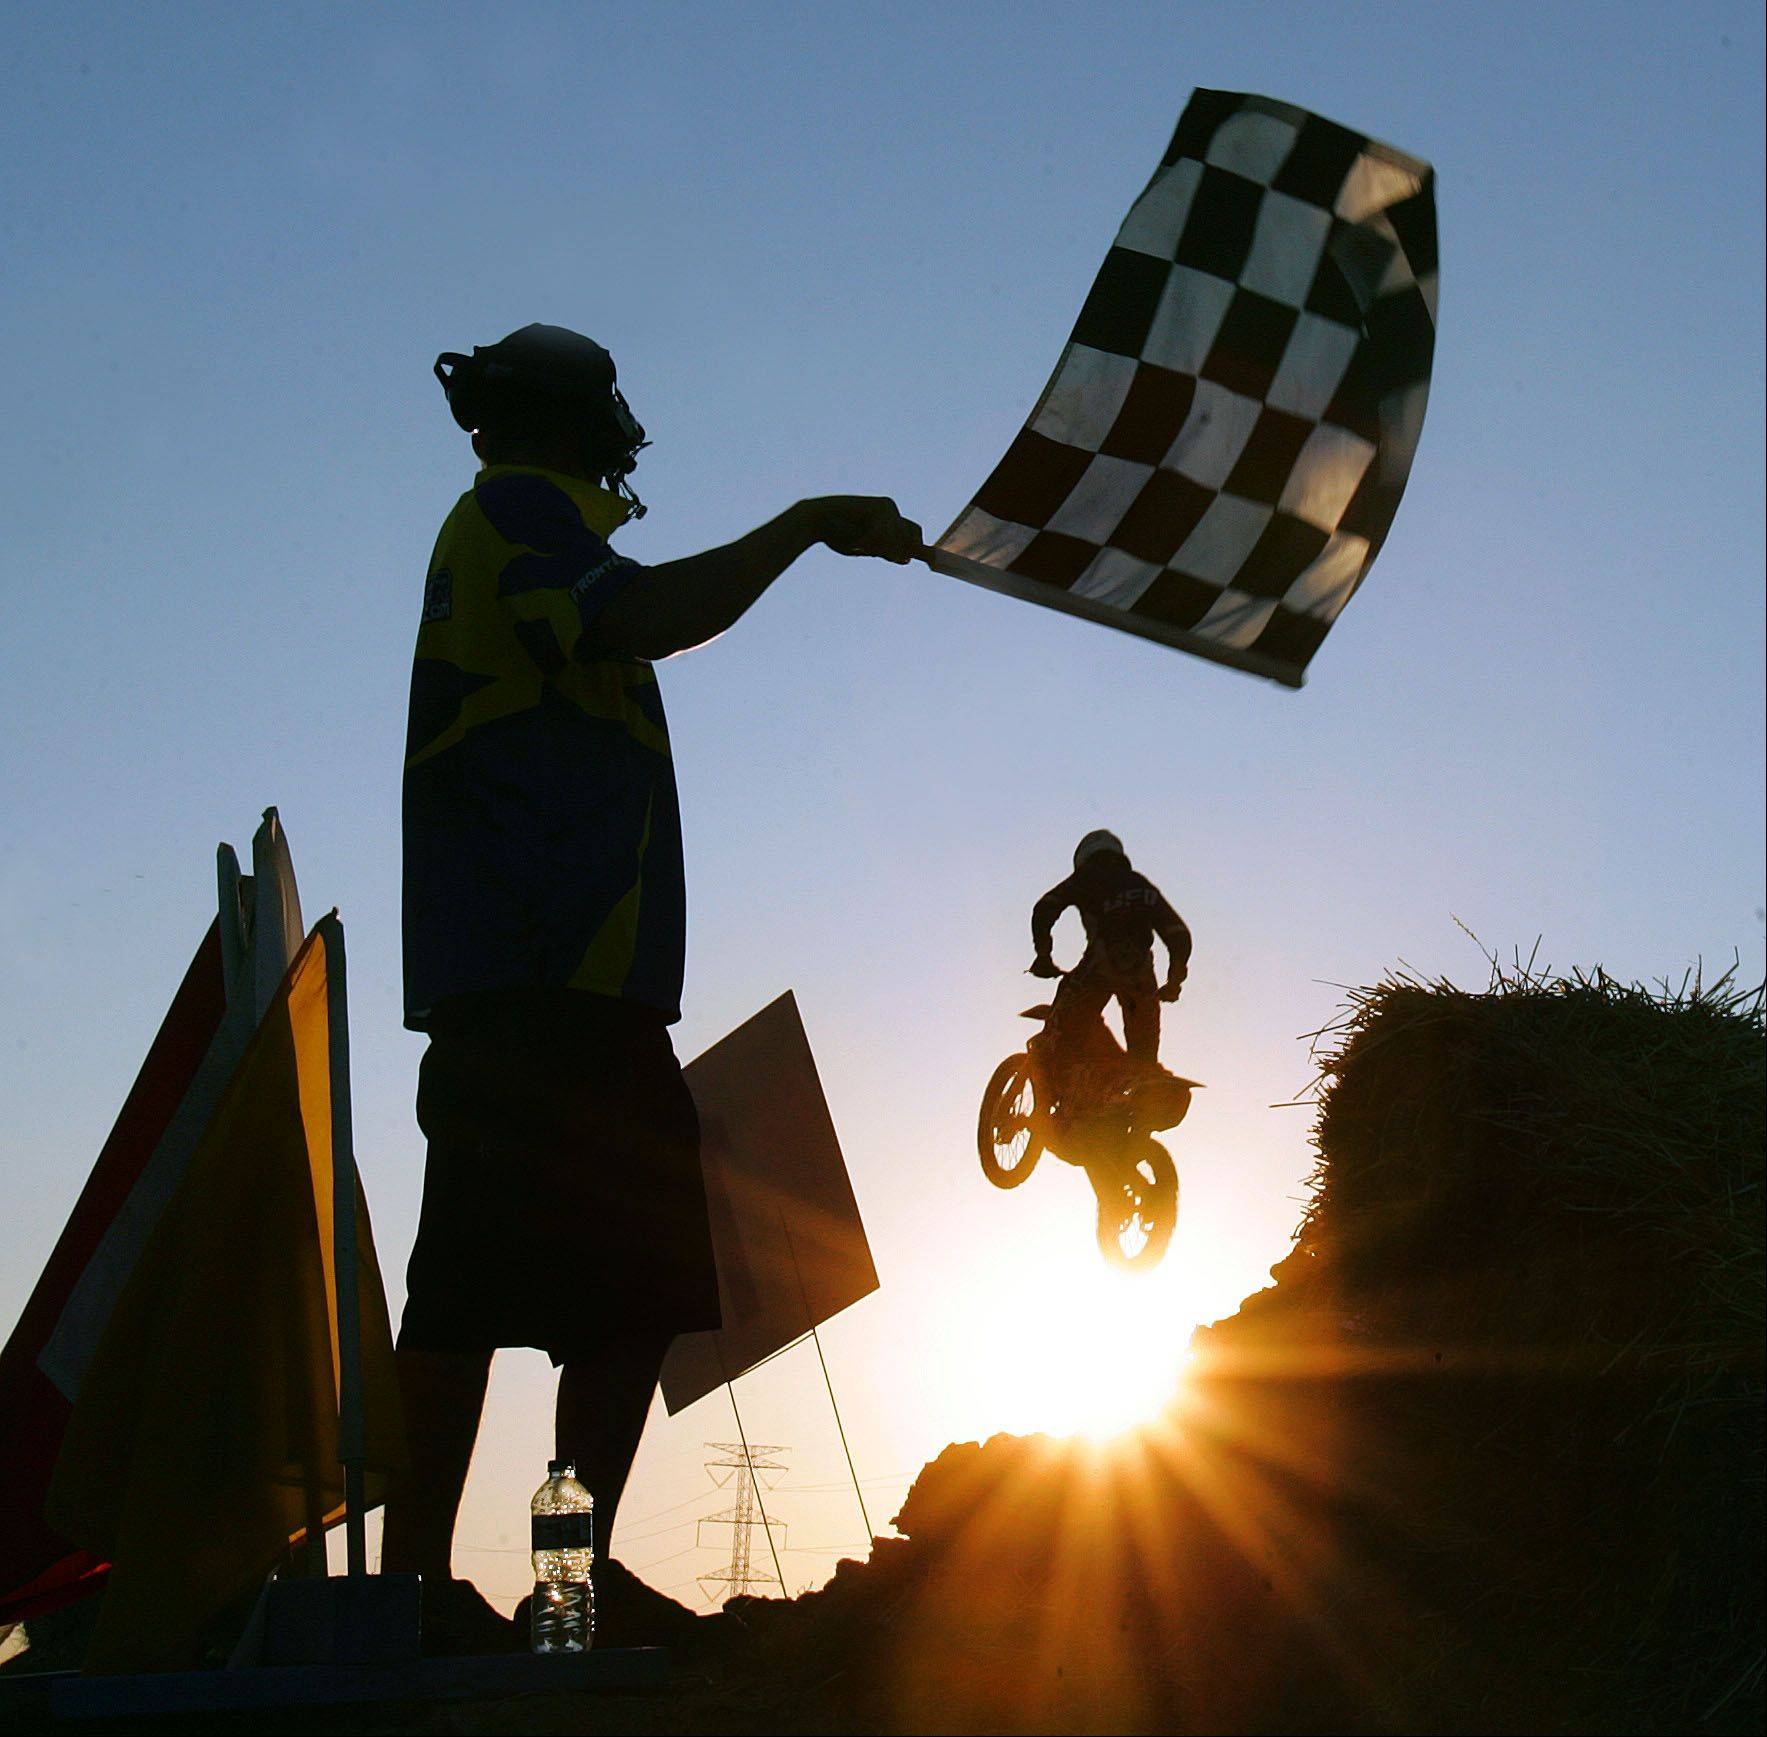 Images: Opening day of the Lake County Fair